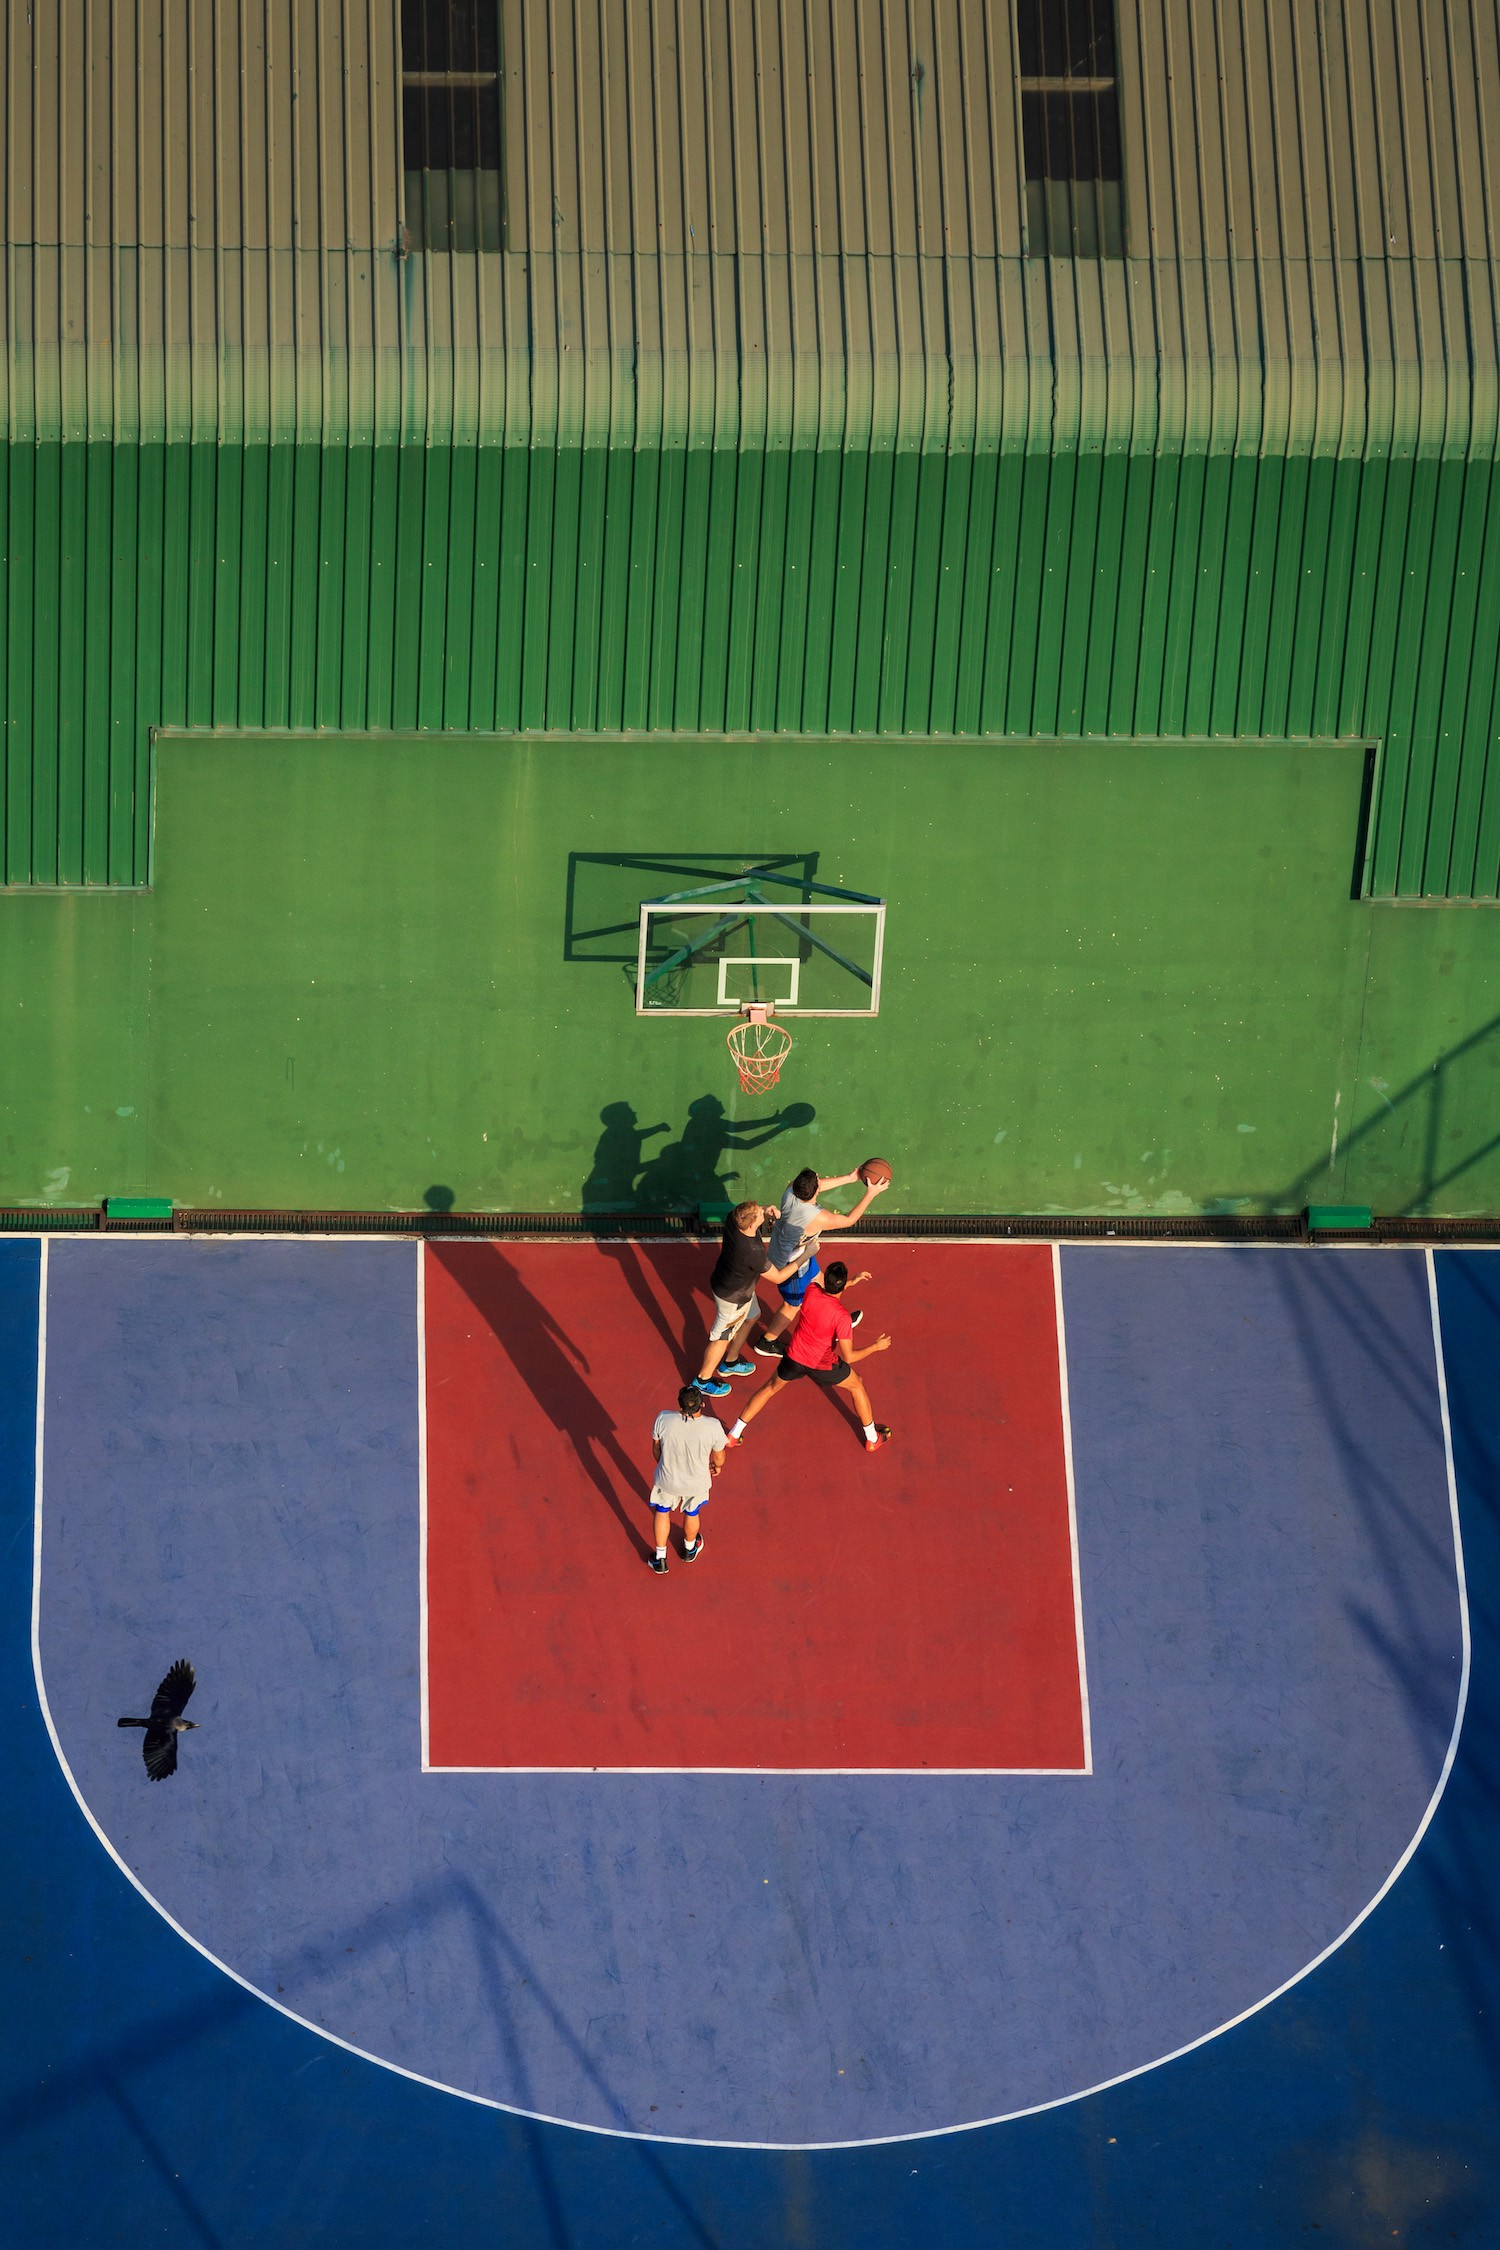 Overhead view of four people playing basketball as a black crow flies in the lower left-hand corner of the photo.